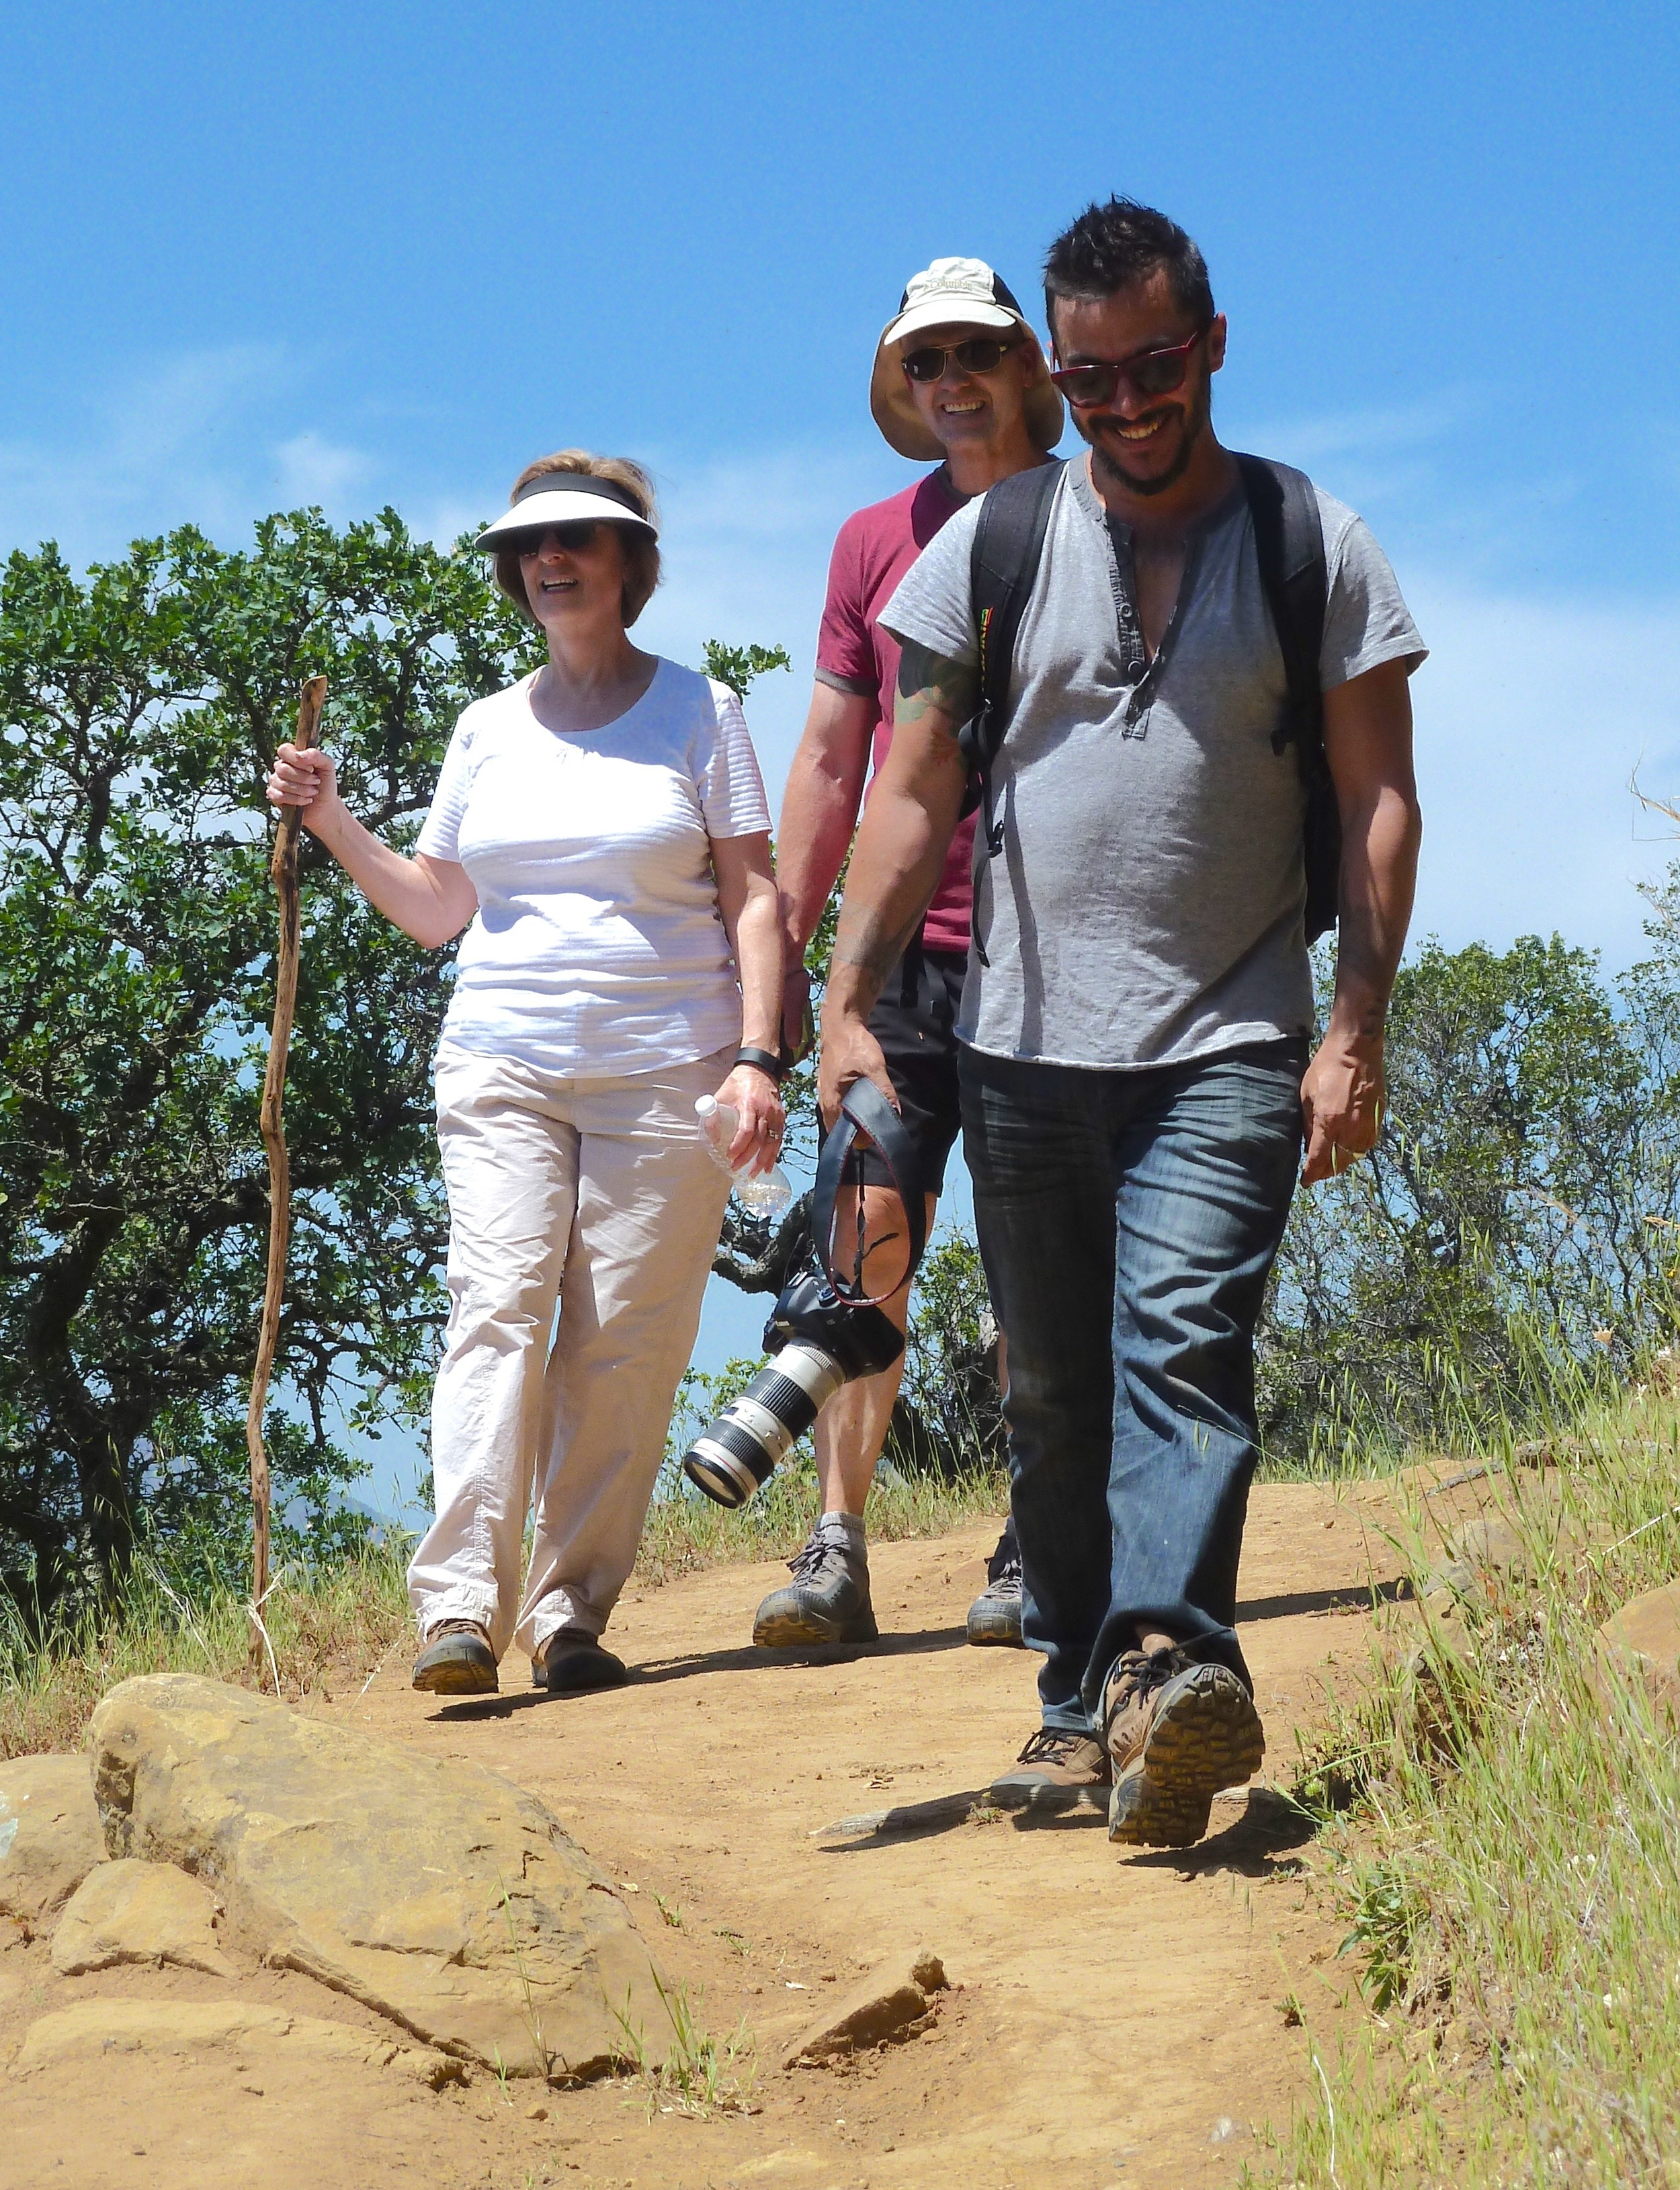 Susan Anderson, Phil Anderson and Jeremy Patlen go truckin' down the Condor Trail at Morgan Territory Regional Preserve.